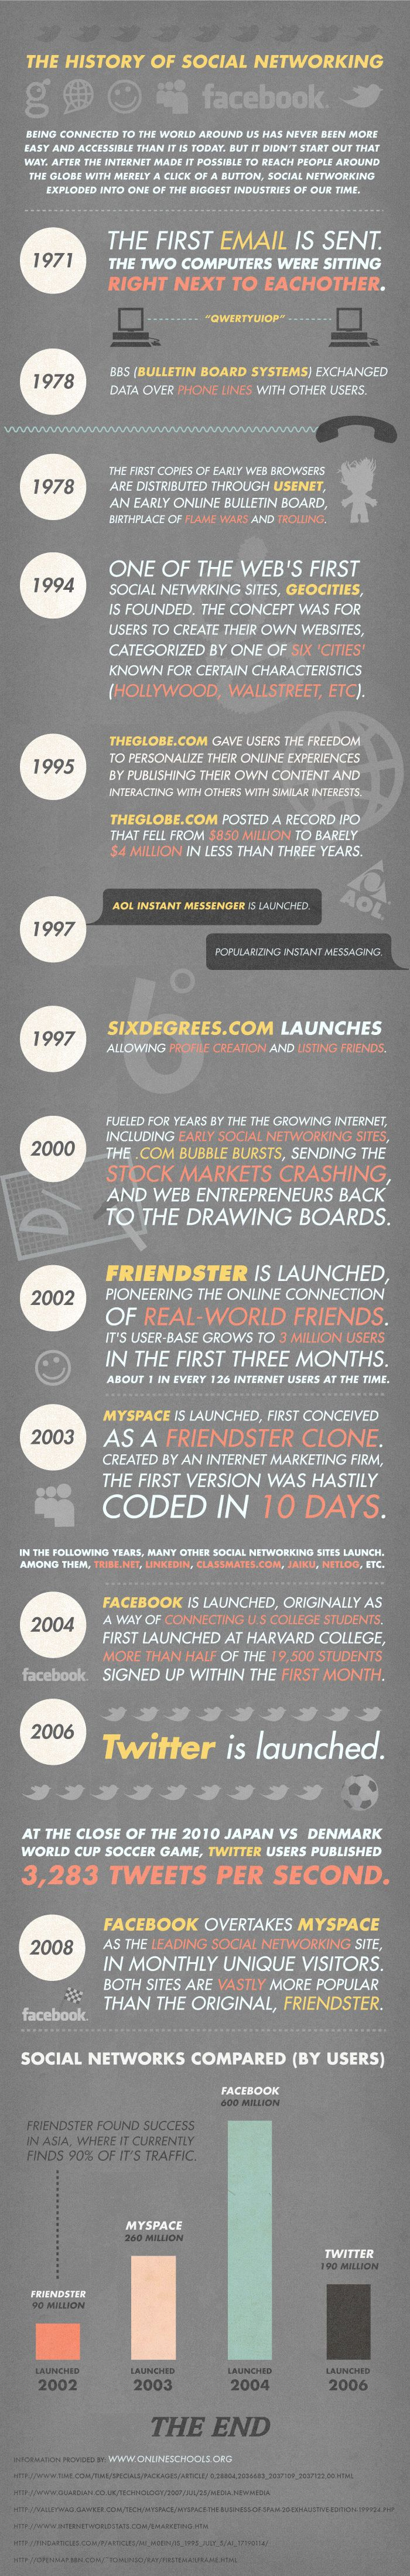 """""""The test messages were entirely forgettable... most likely the first message was QWERTYIOP..."""" - Ray Tomlinson, the person who sent the world's first email (which was to himself!) Remember Geocities? Take a brief look at the short history of social networking and the internet."""